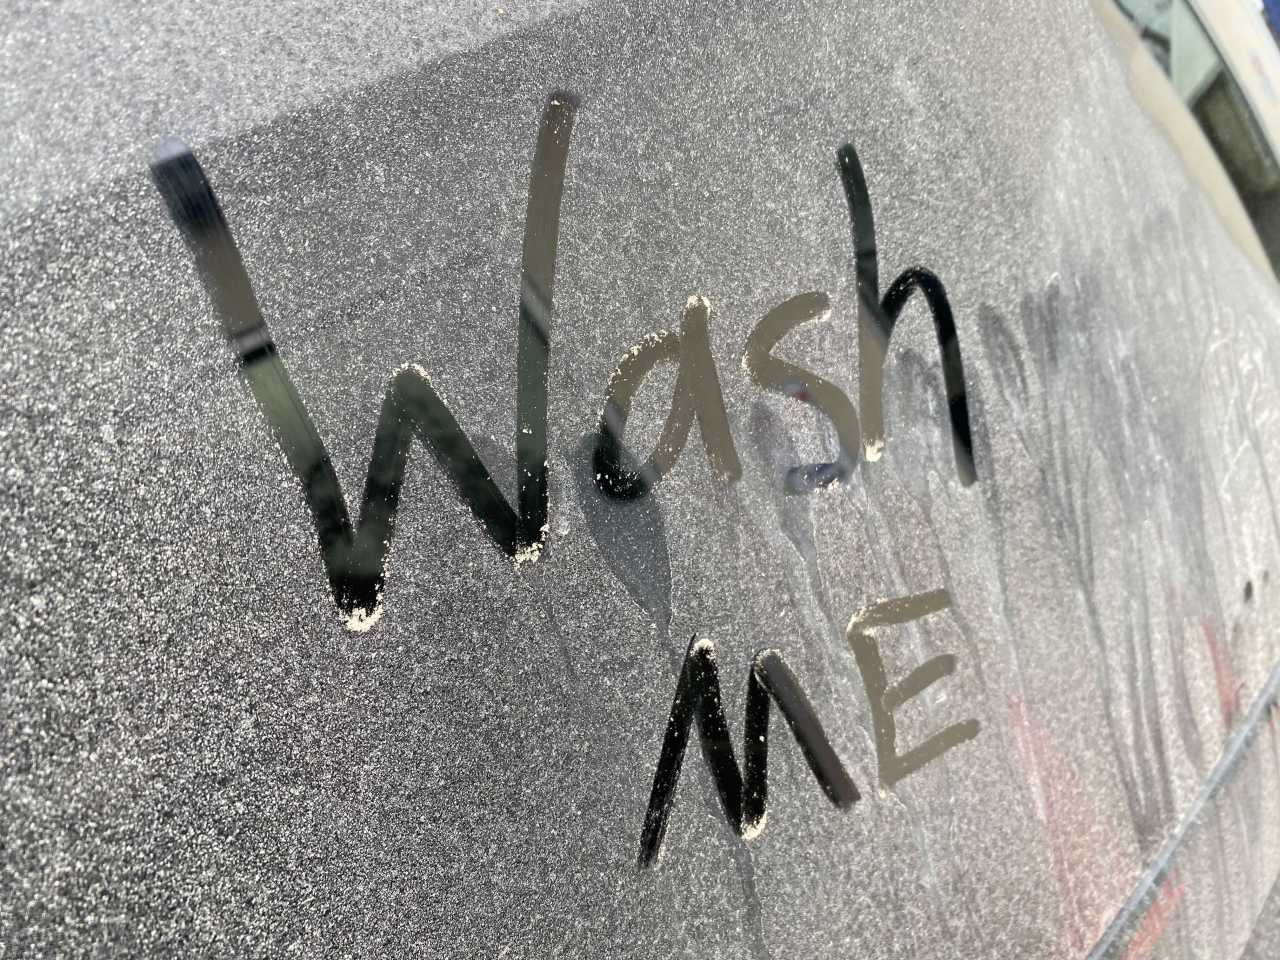 It's OK to wash your car now, Travis County Judge says